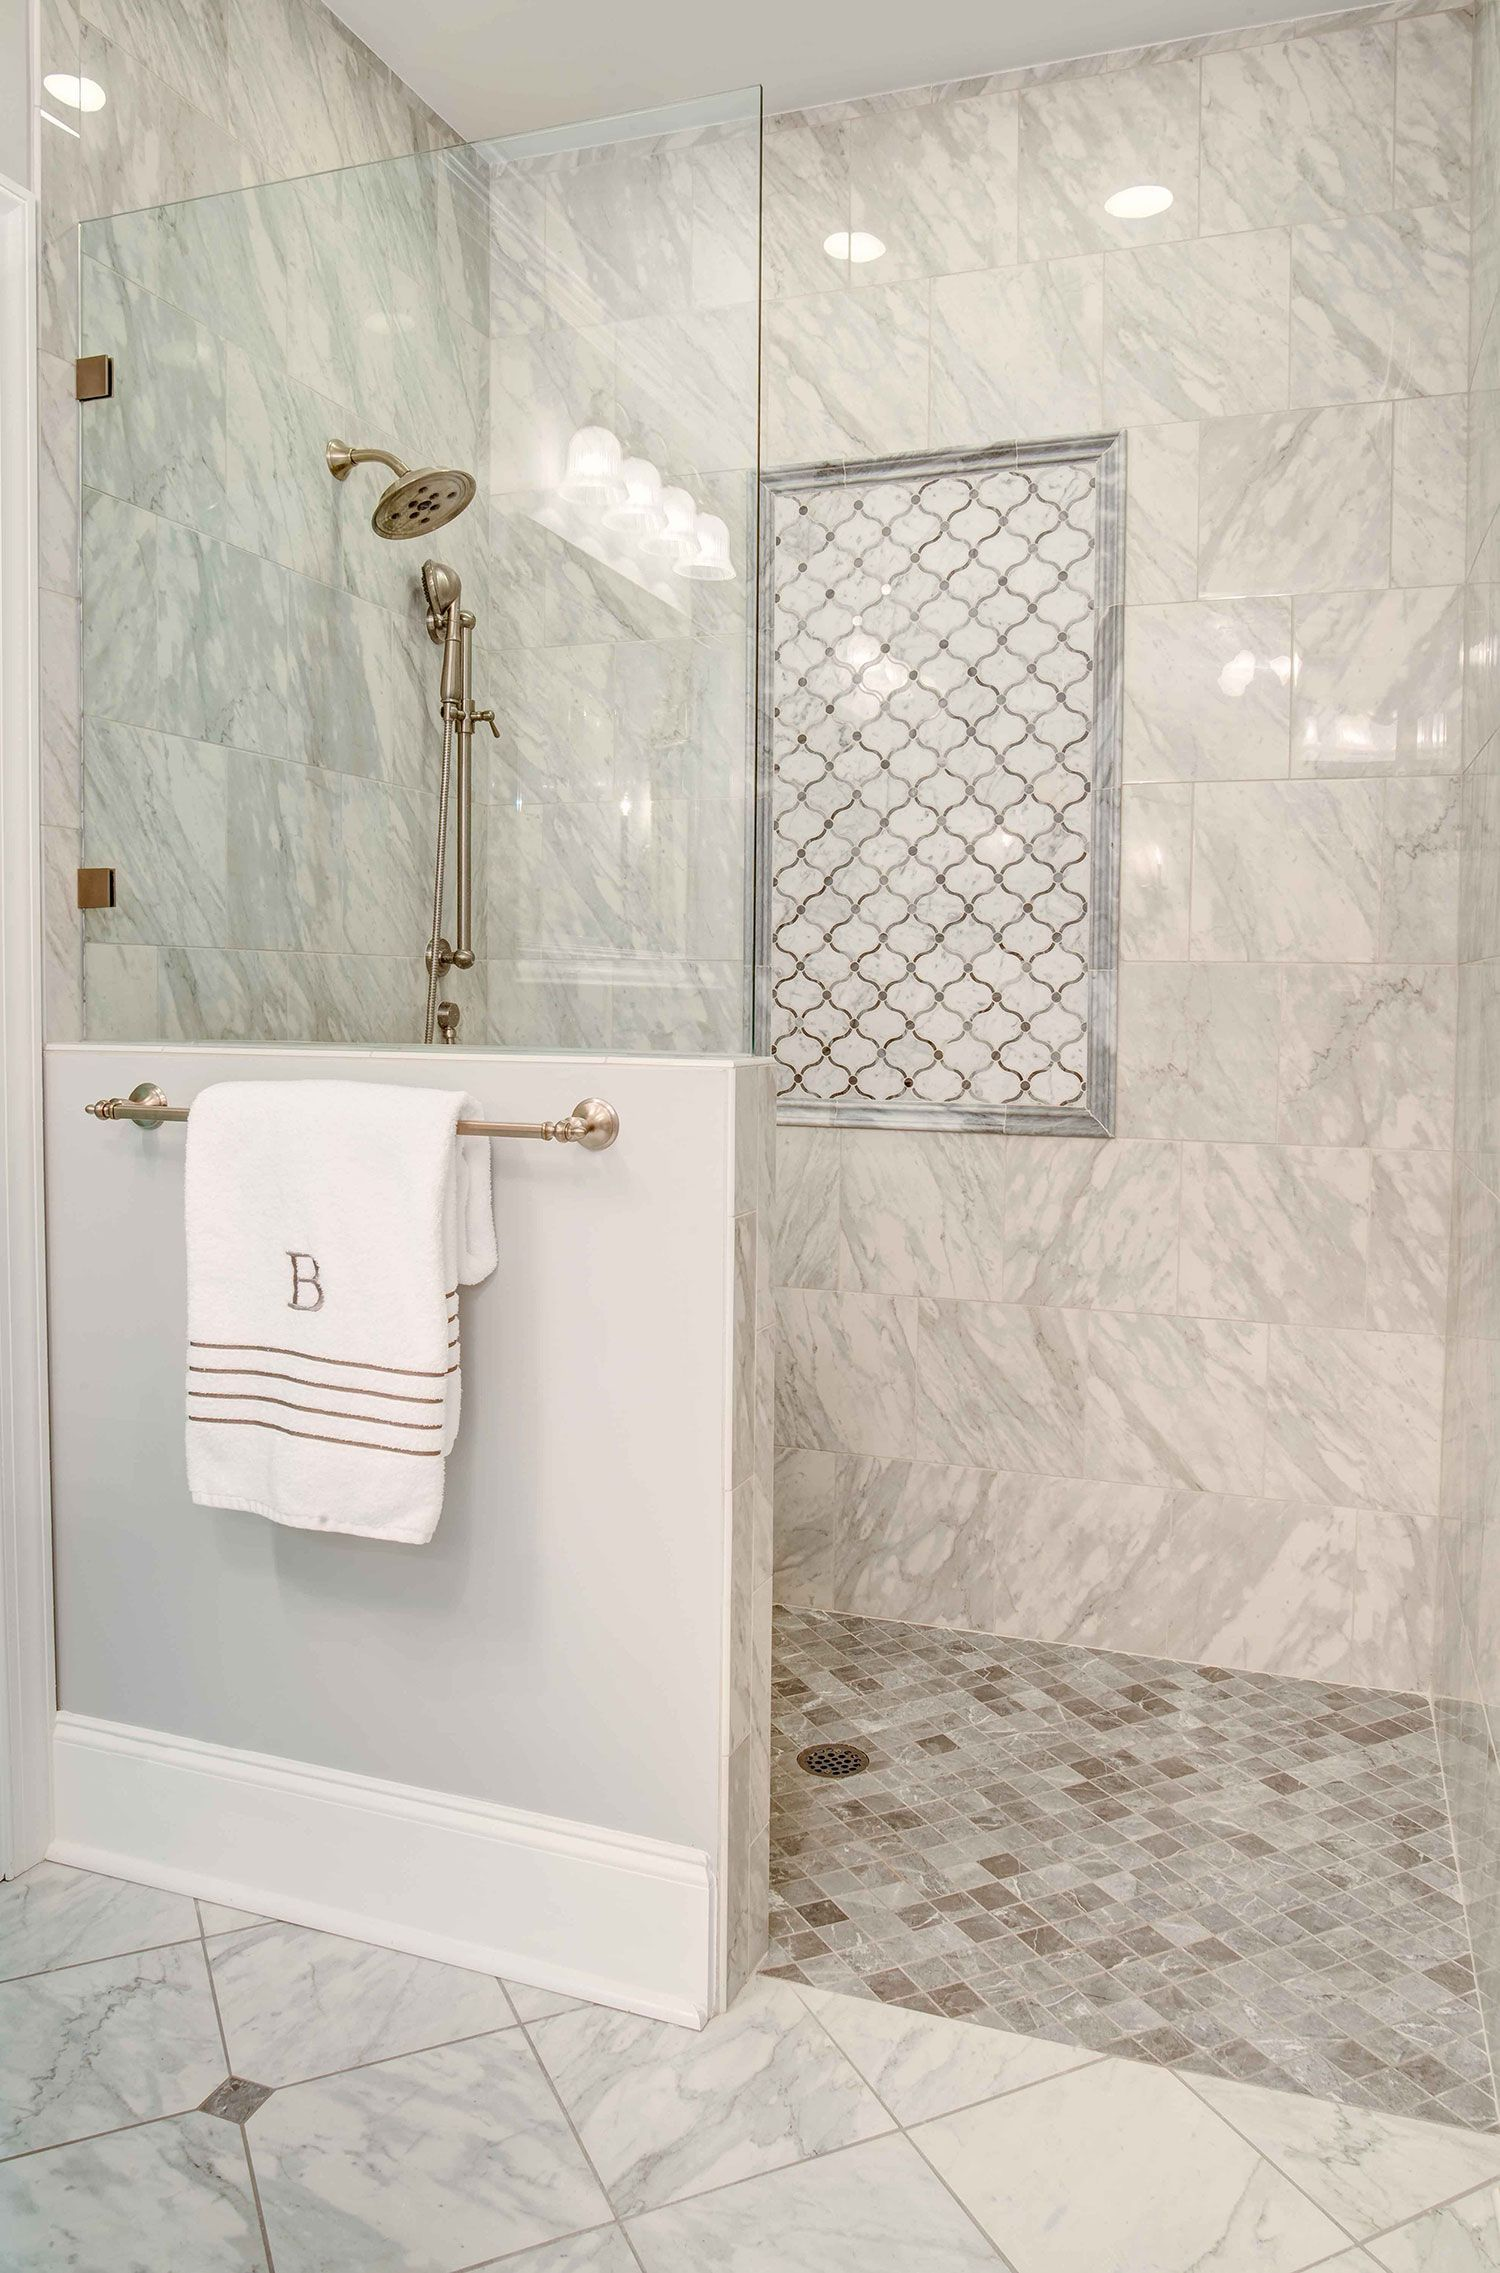 Image Result For Curbless Shower Half Wall Half Wall Shower Glass Shower Wall Bathroom Shower Design